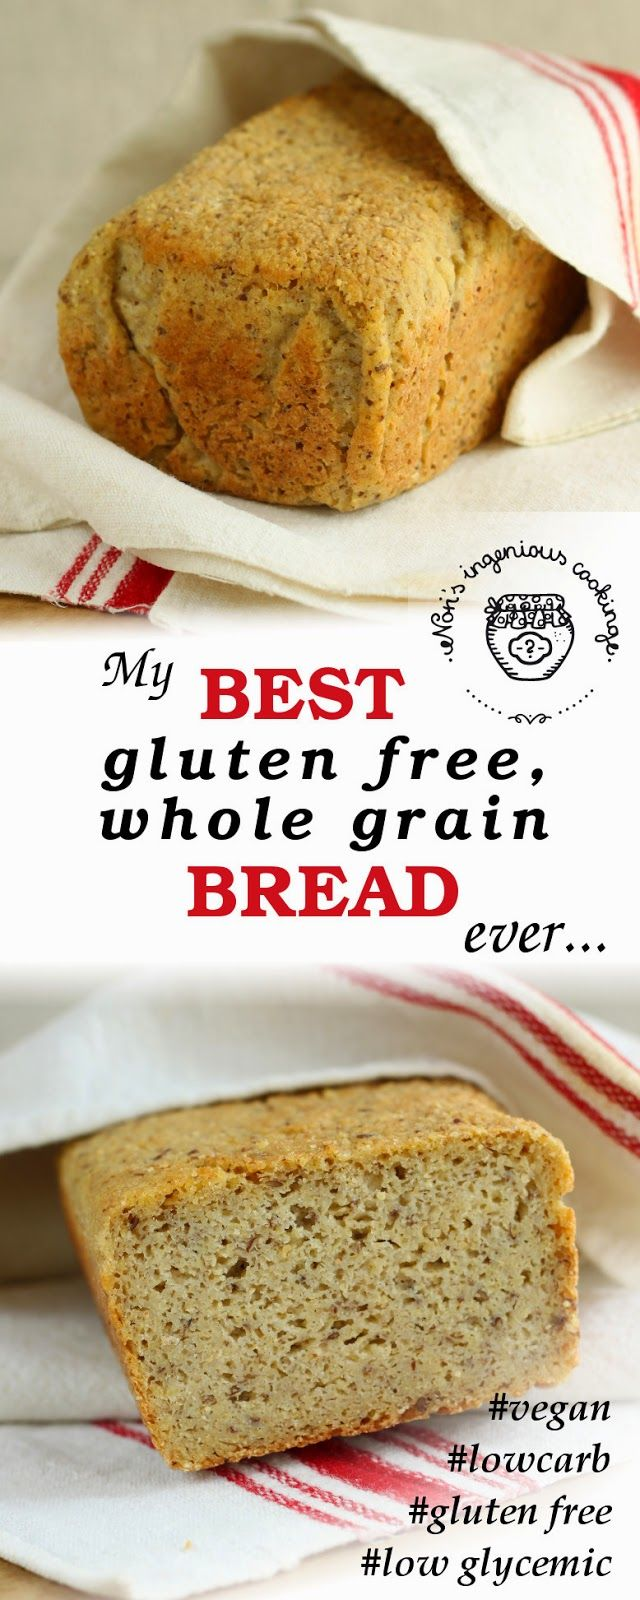 My best #glutenfree, #wholegrain #bread, ever! (#vegan, #lowglycemic, #healthy, #soyfree, #eggfree, #top8free recipe)